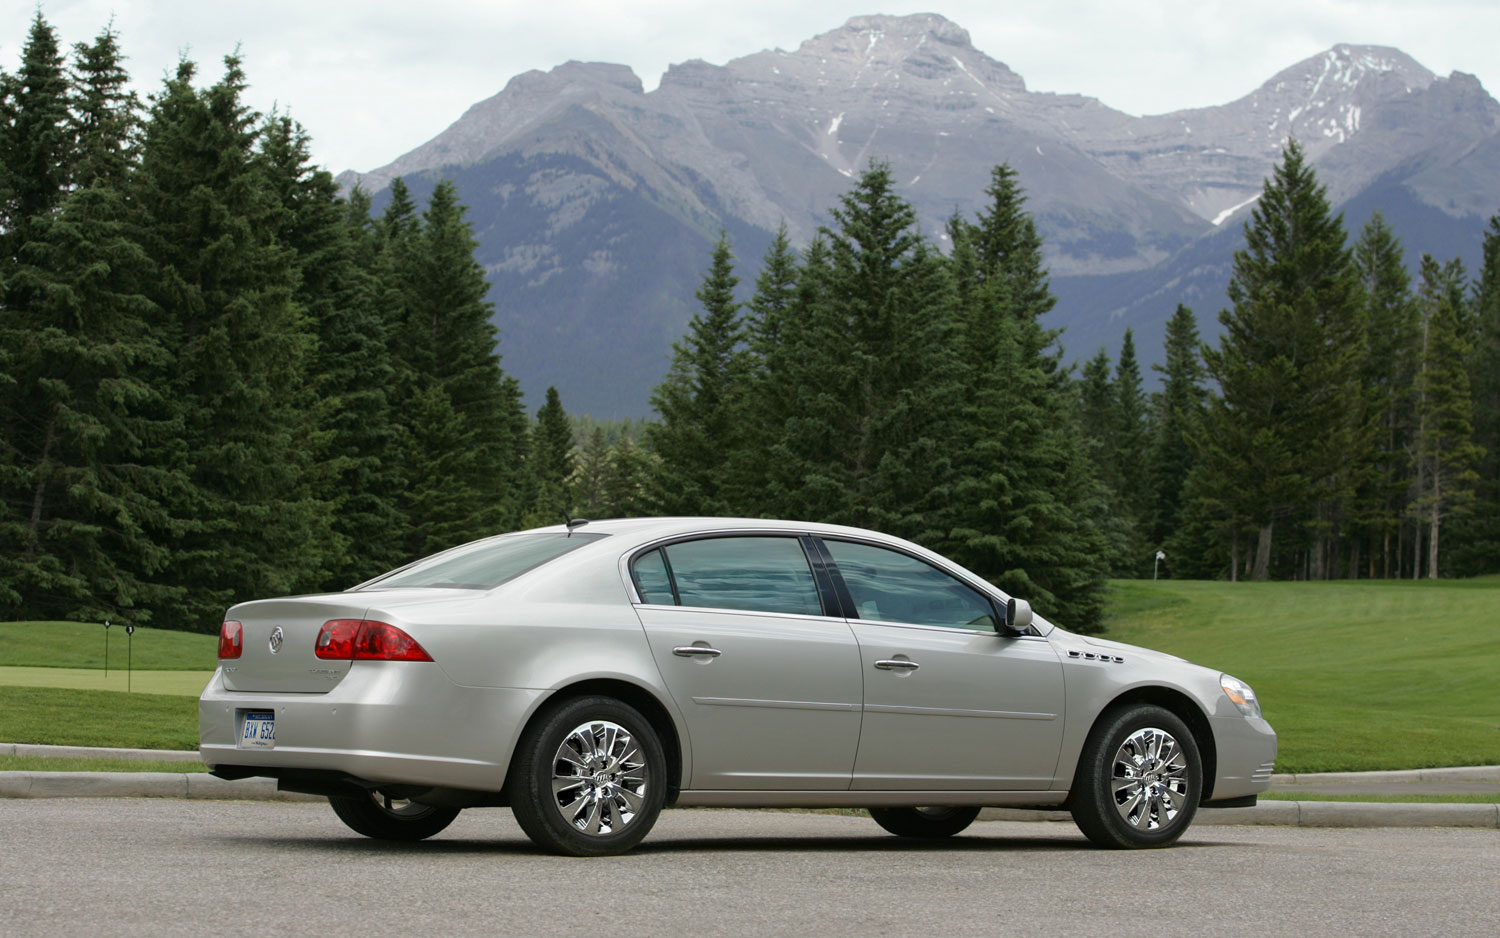 2006 Buick Lucerne Recalls >> GM Recalls 3.16 Million More Cars for Key Issues - Automobile Magazine